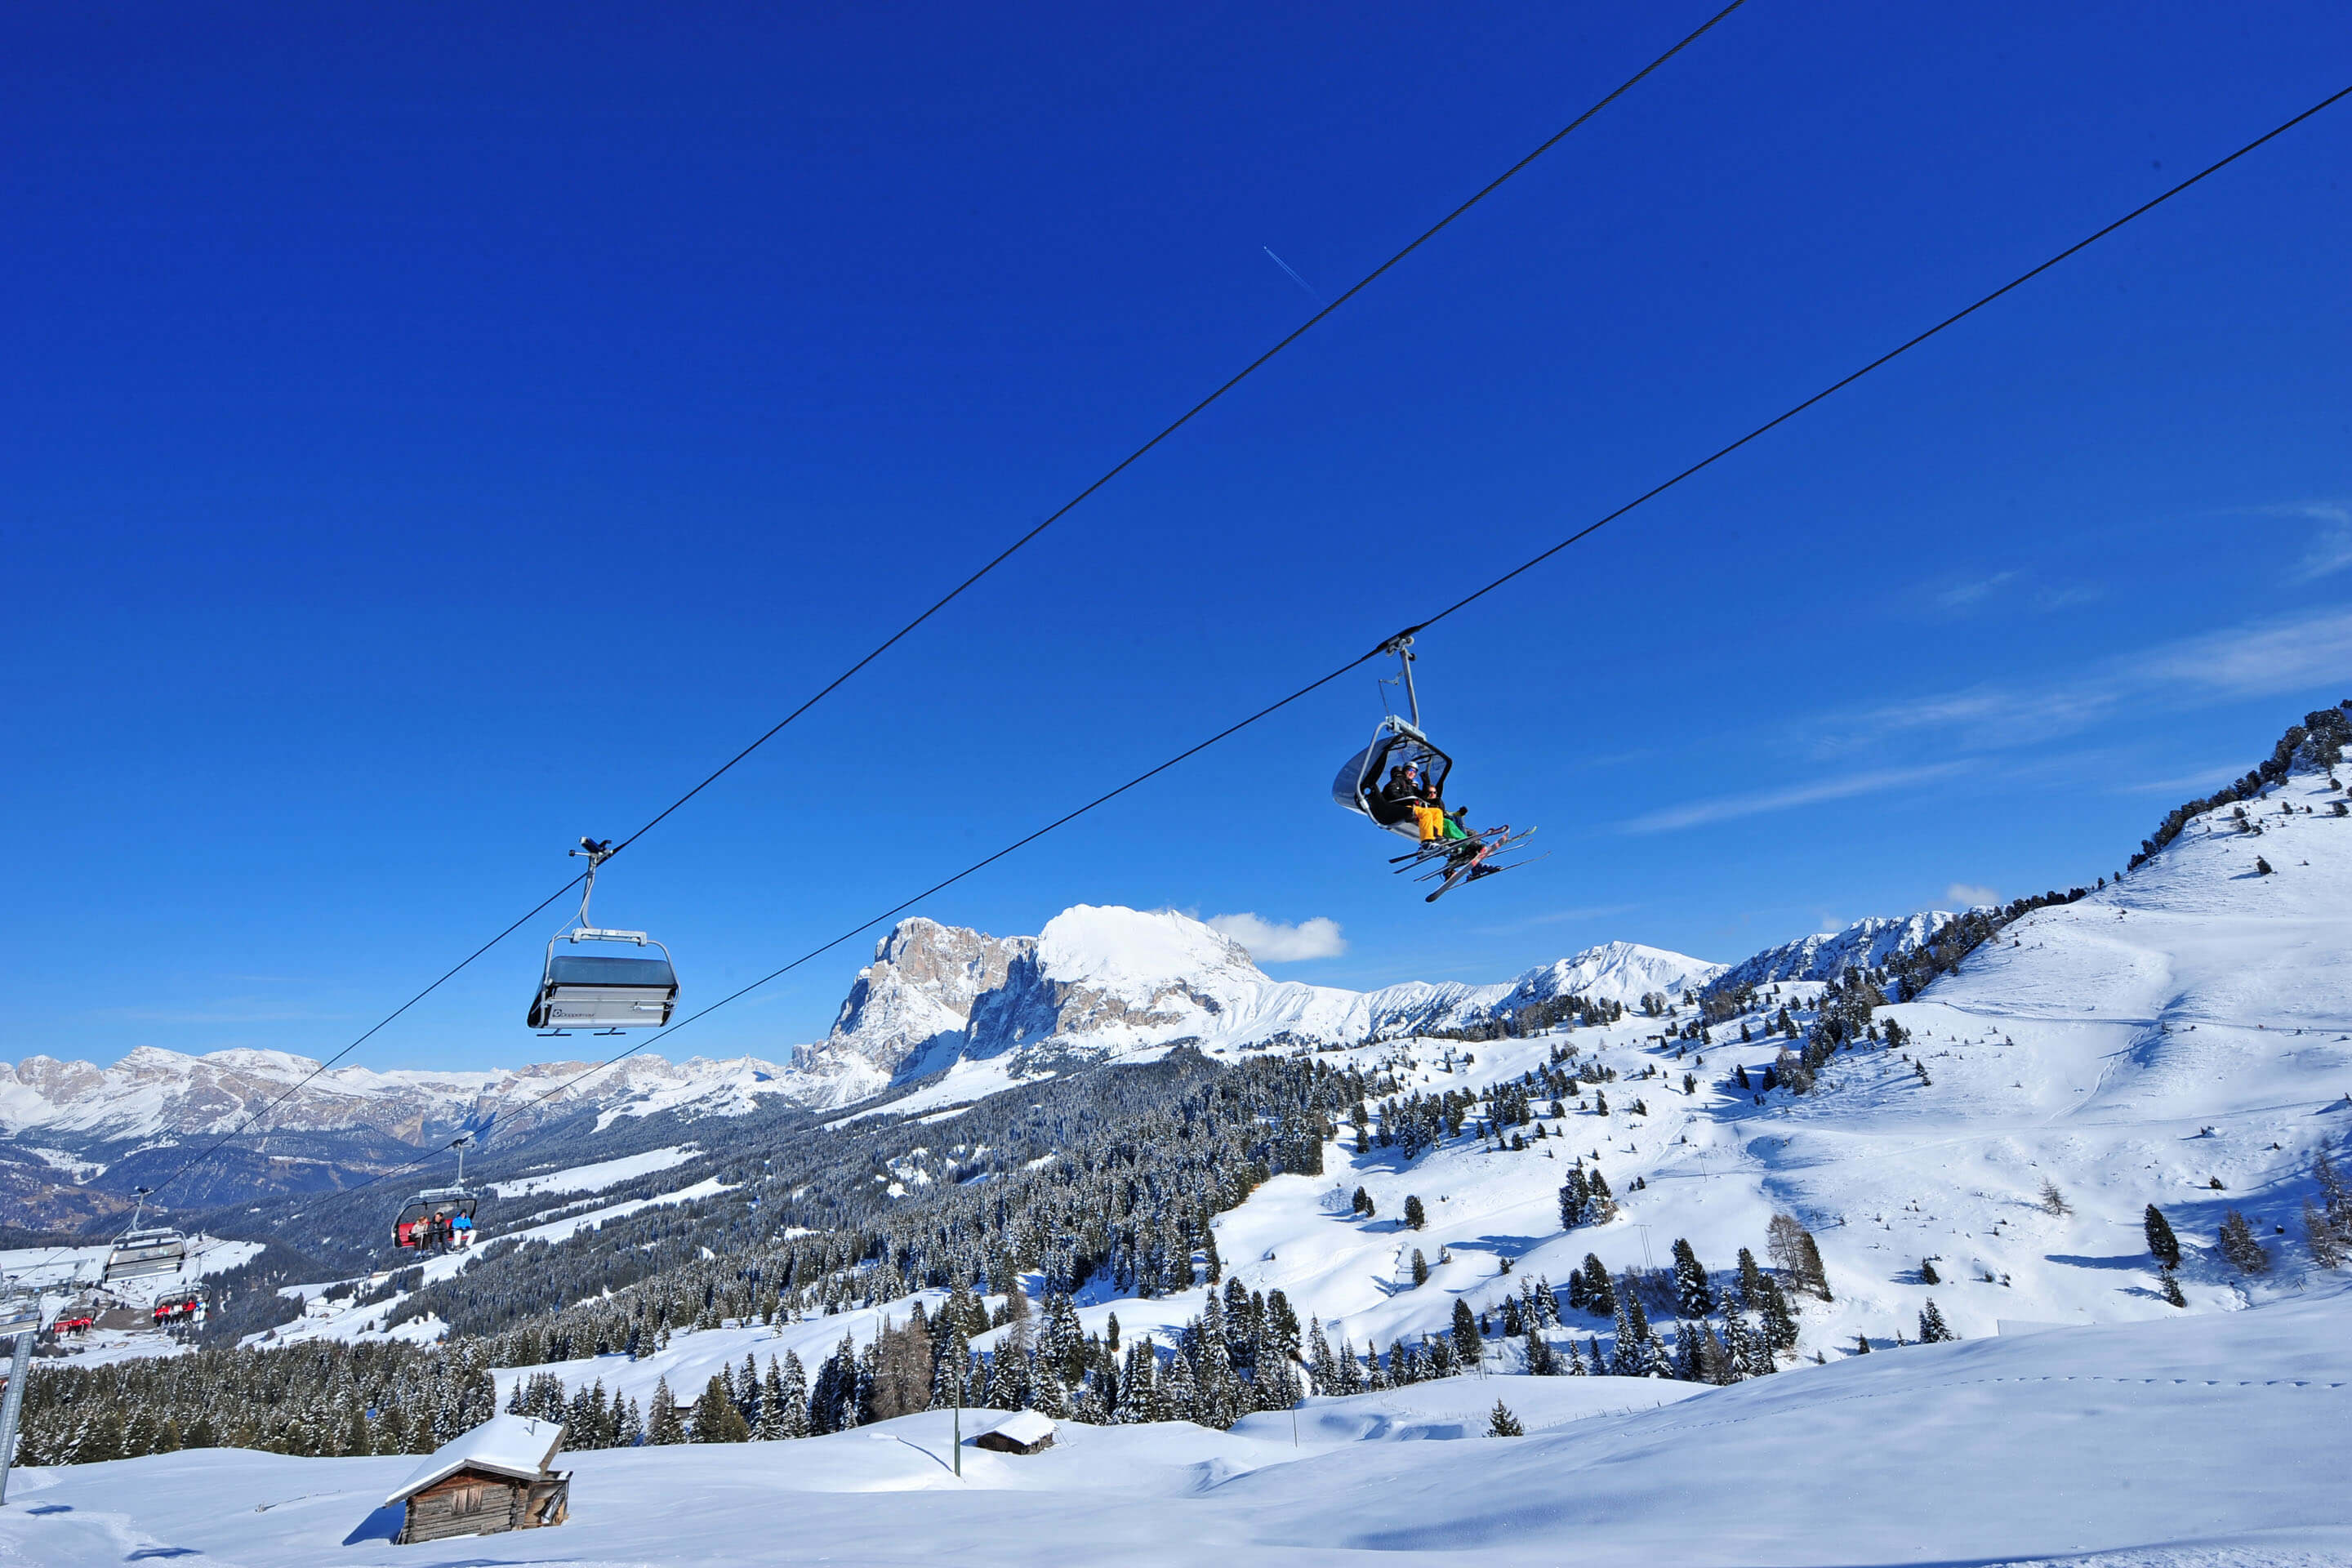 Skiing under the winter sun of the Dolomites